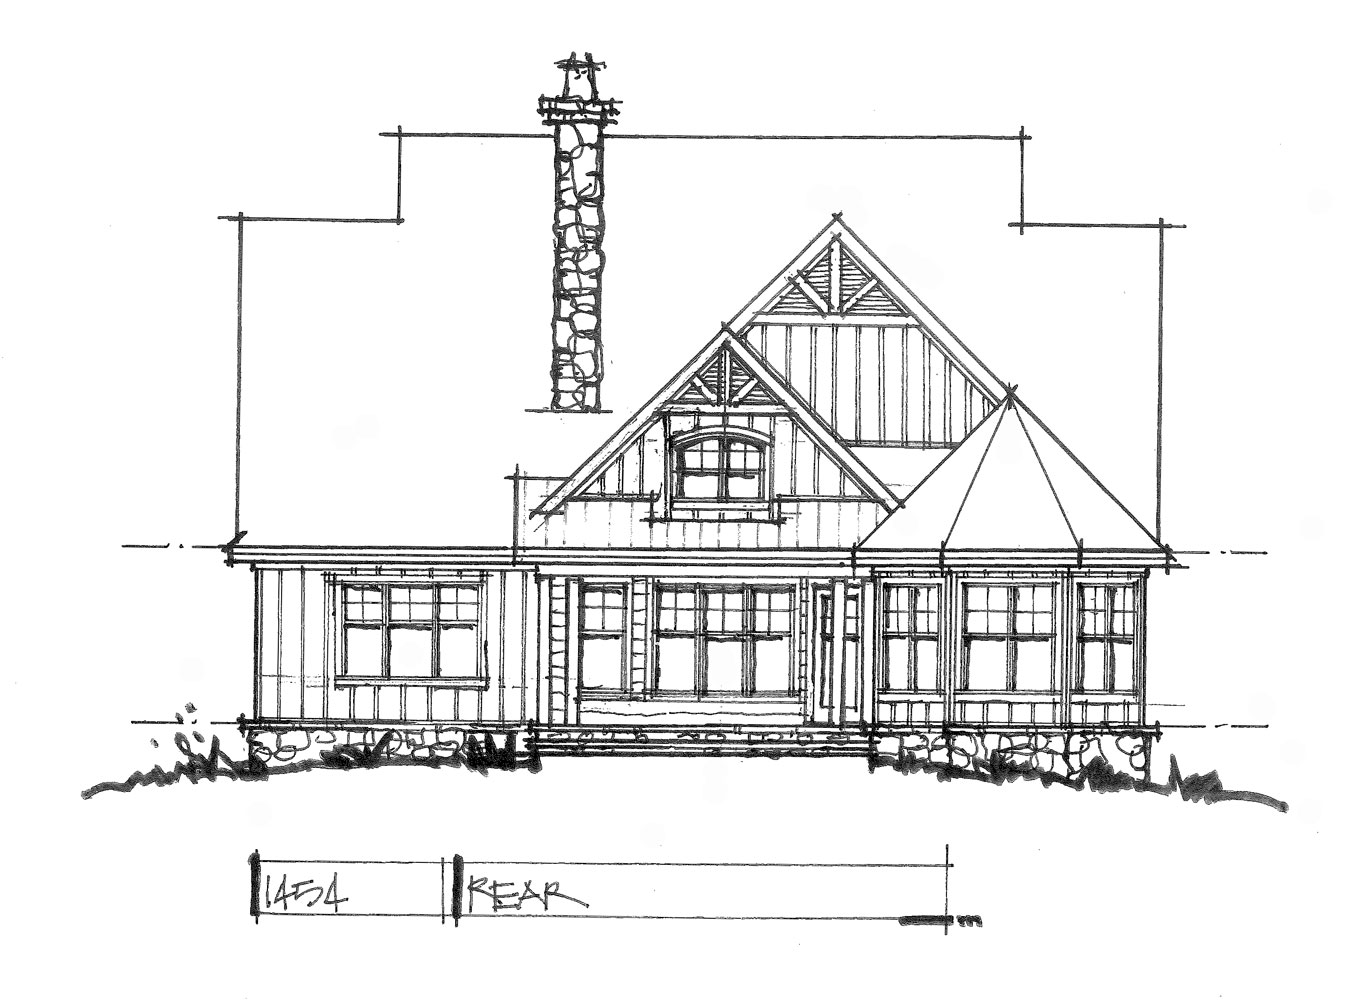 Check out the rear elevation for house plan 1454.